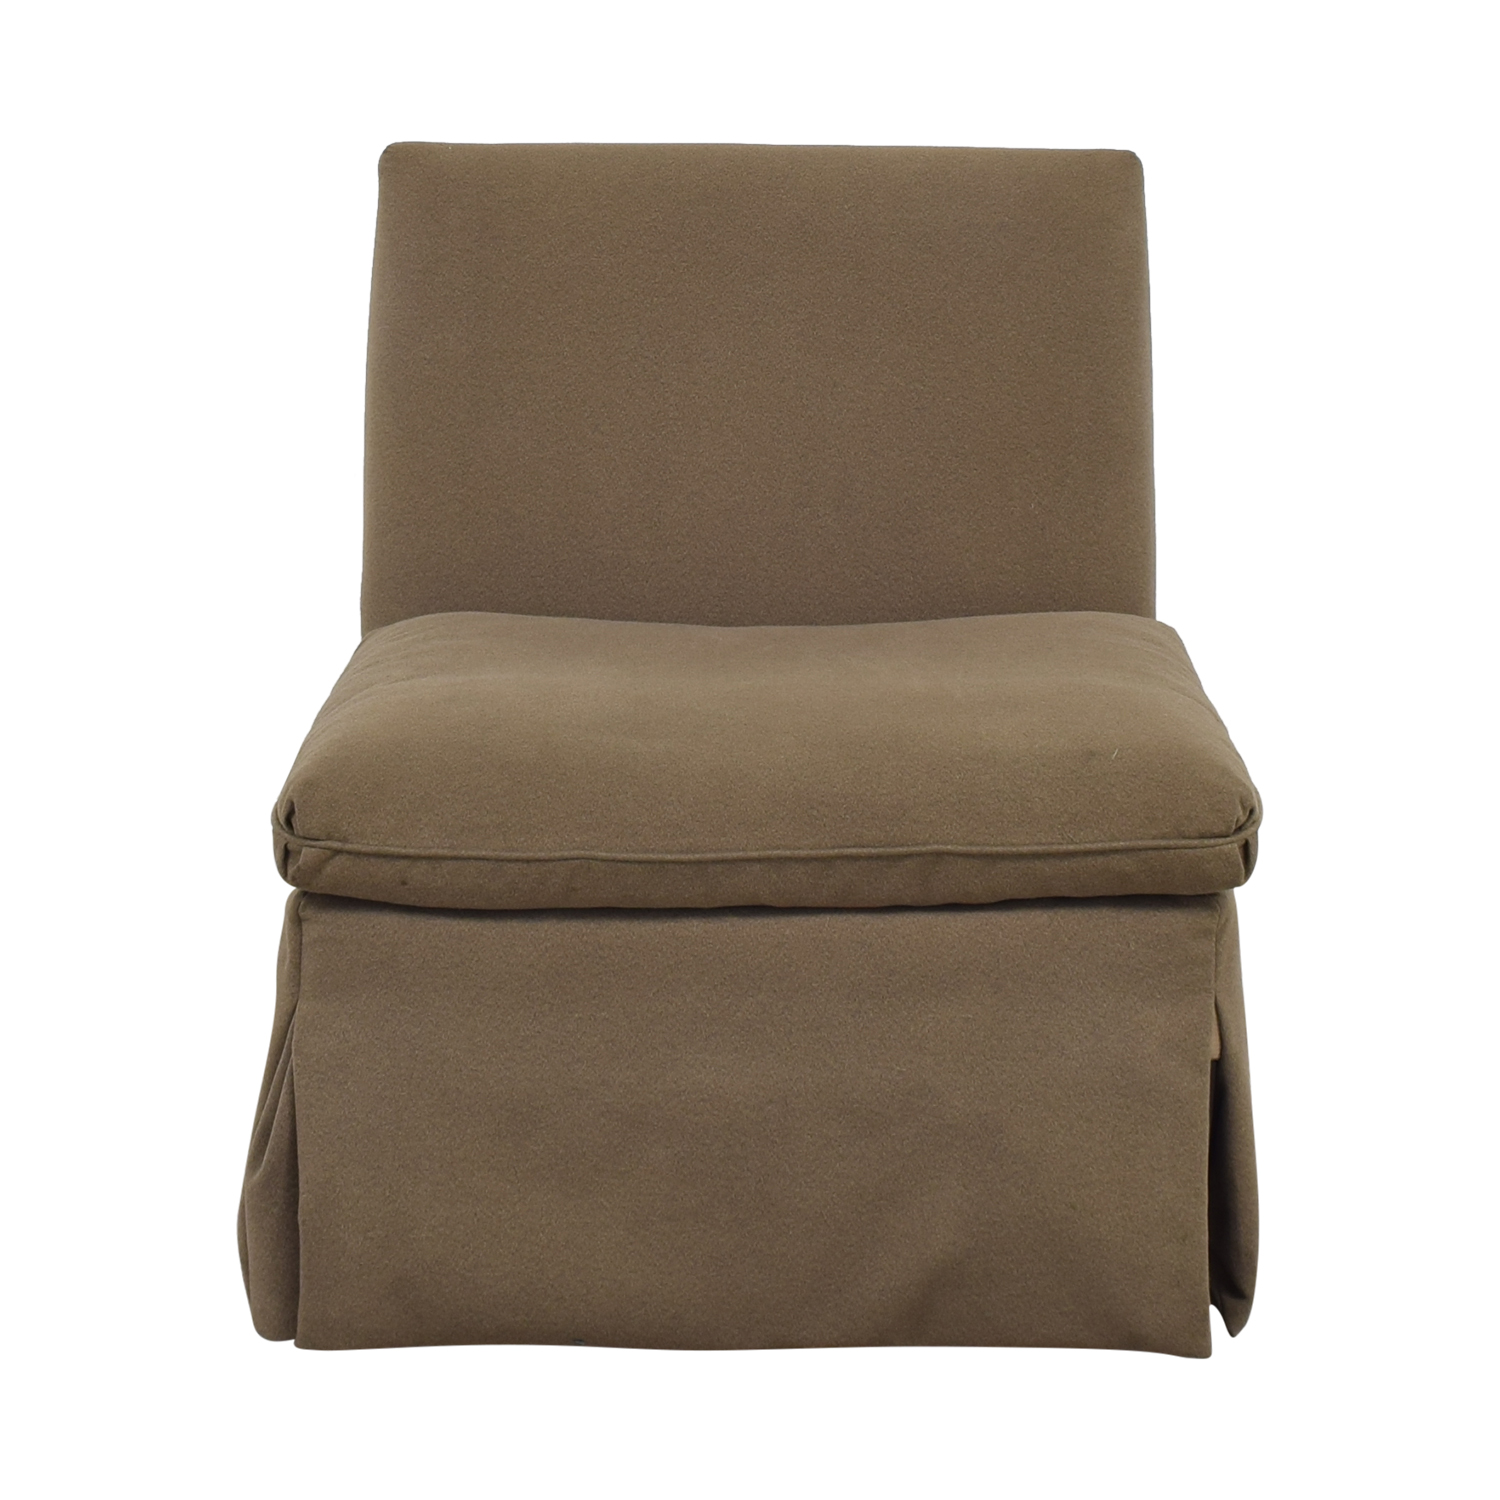 Ethan Allen Ethan Allen Slipper Chair price